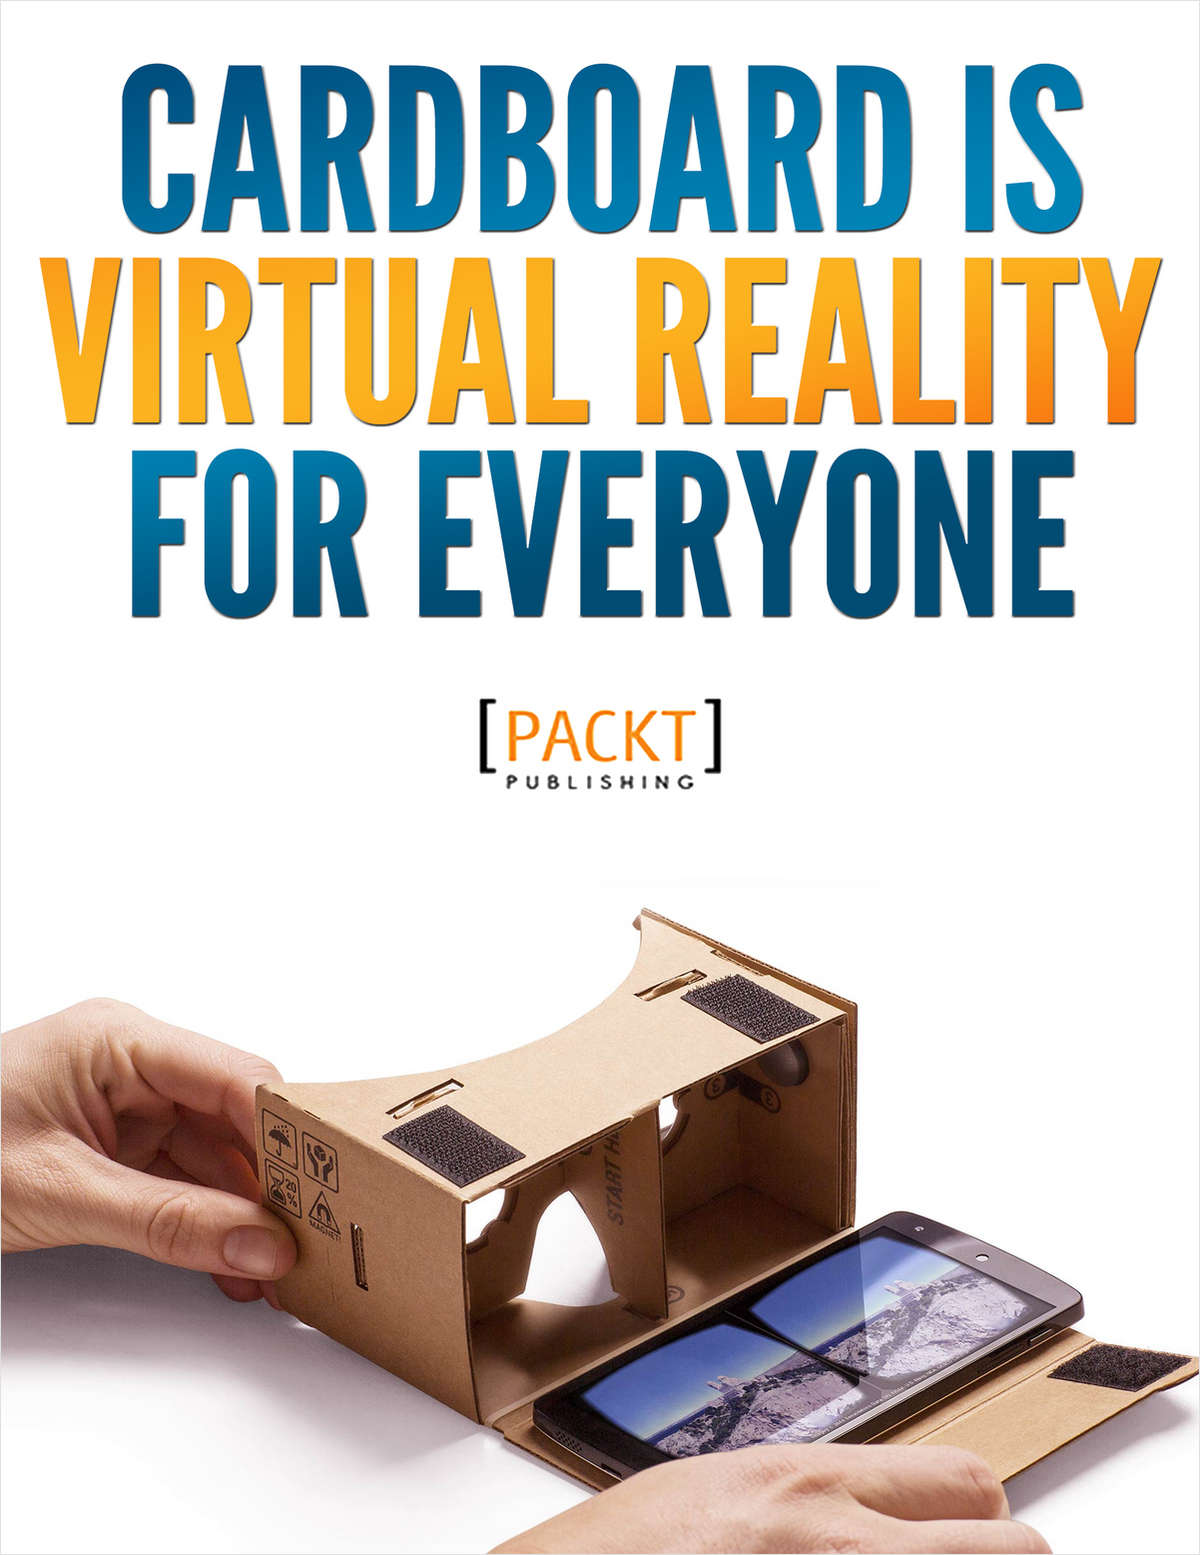 Cardboard is Virtual Reality for Everyone